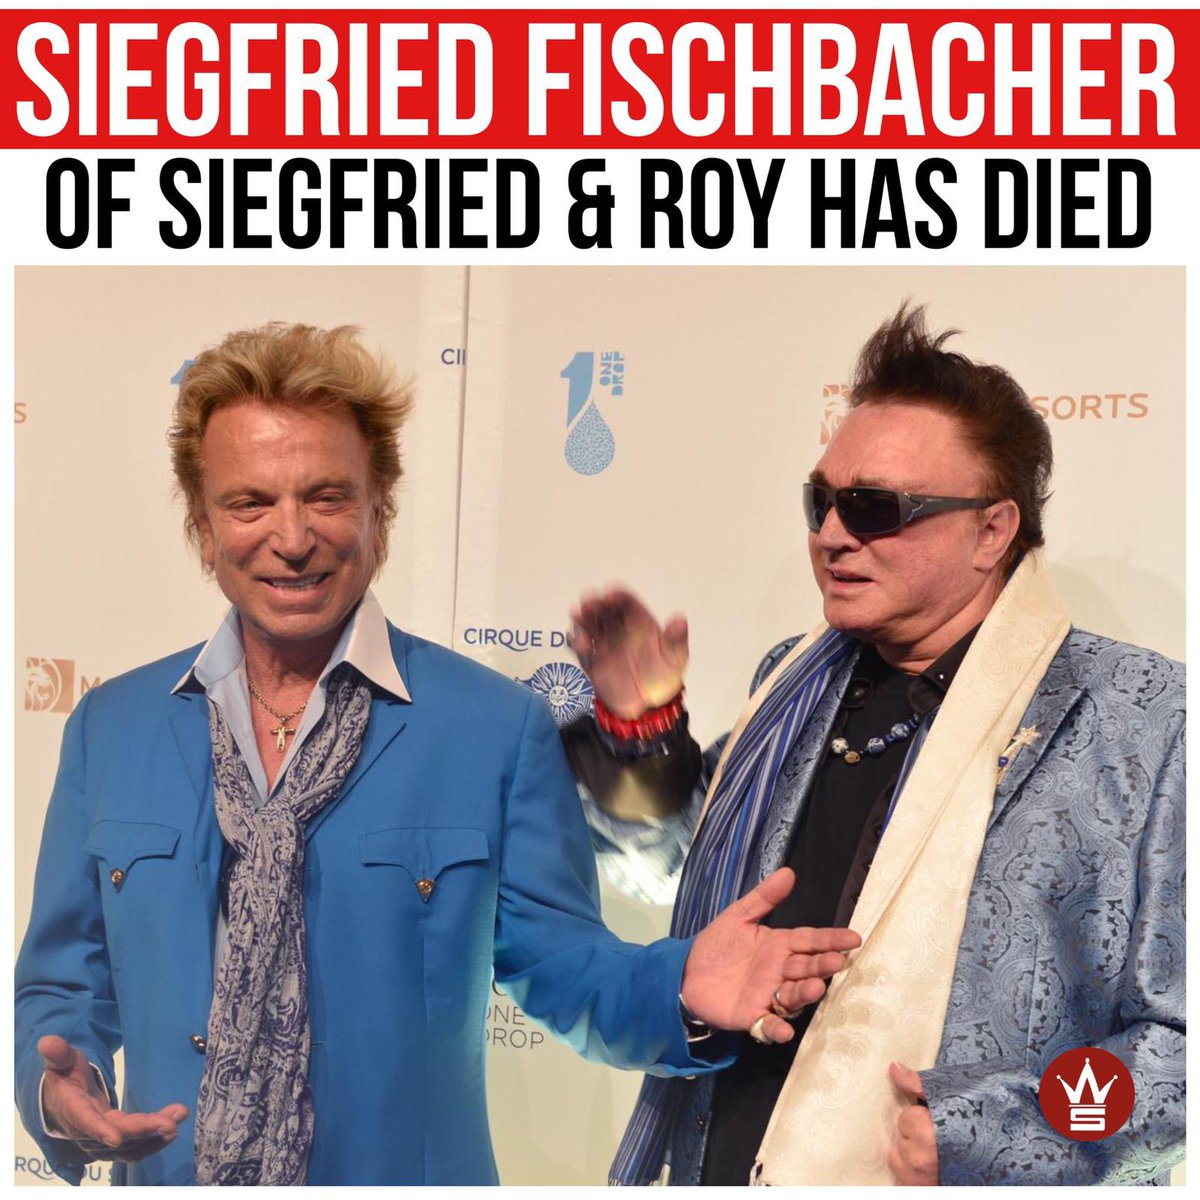 #SiegfriedFischbacher (left), half of the Siegfried & Roy magic duo, has died at the age of 81. Siegfried announced just two days ago that he had terminal pancreatic cancer and died last night at his home in Las Vegas. Our thoughts and prayers are with his family and friends. 🙏 https://t.co/VMaCbkBPOJ